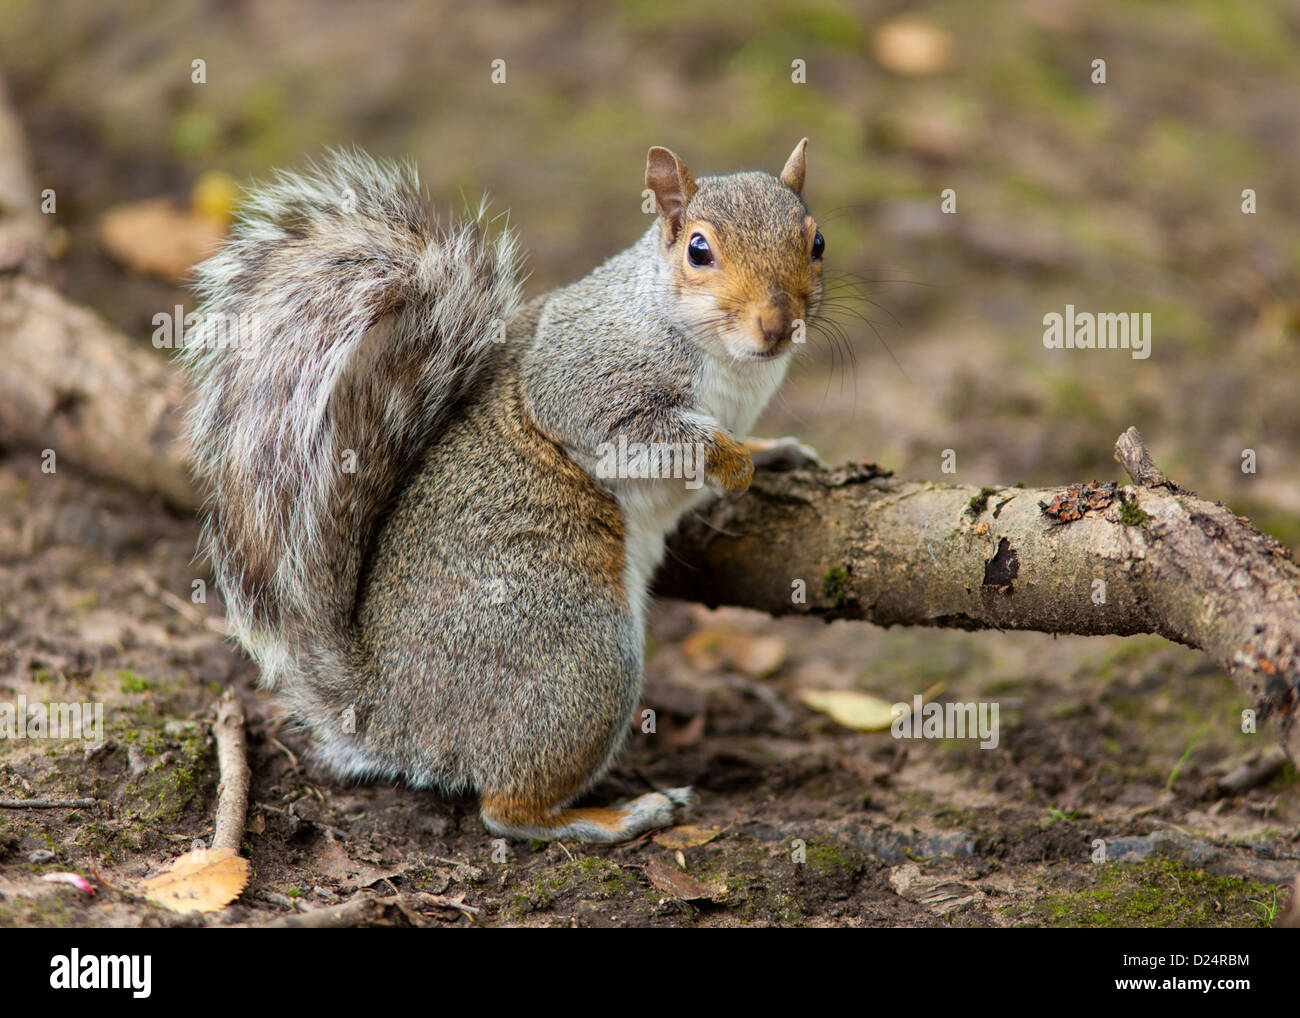 The Grey Squirrel in Autumn - Stock Image